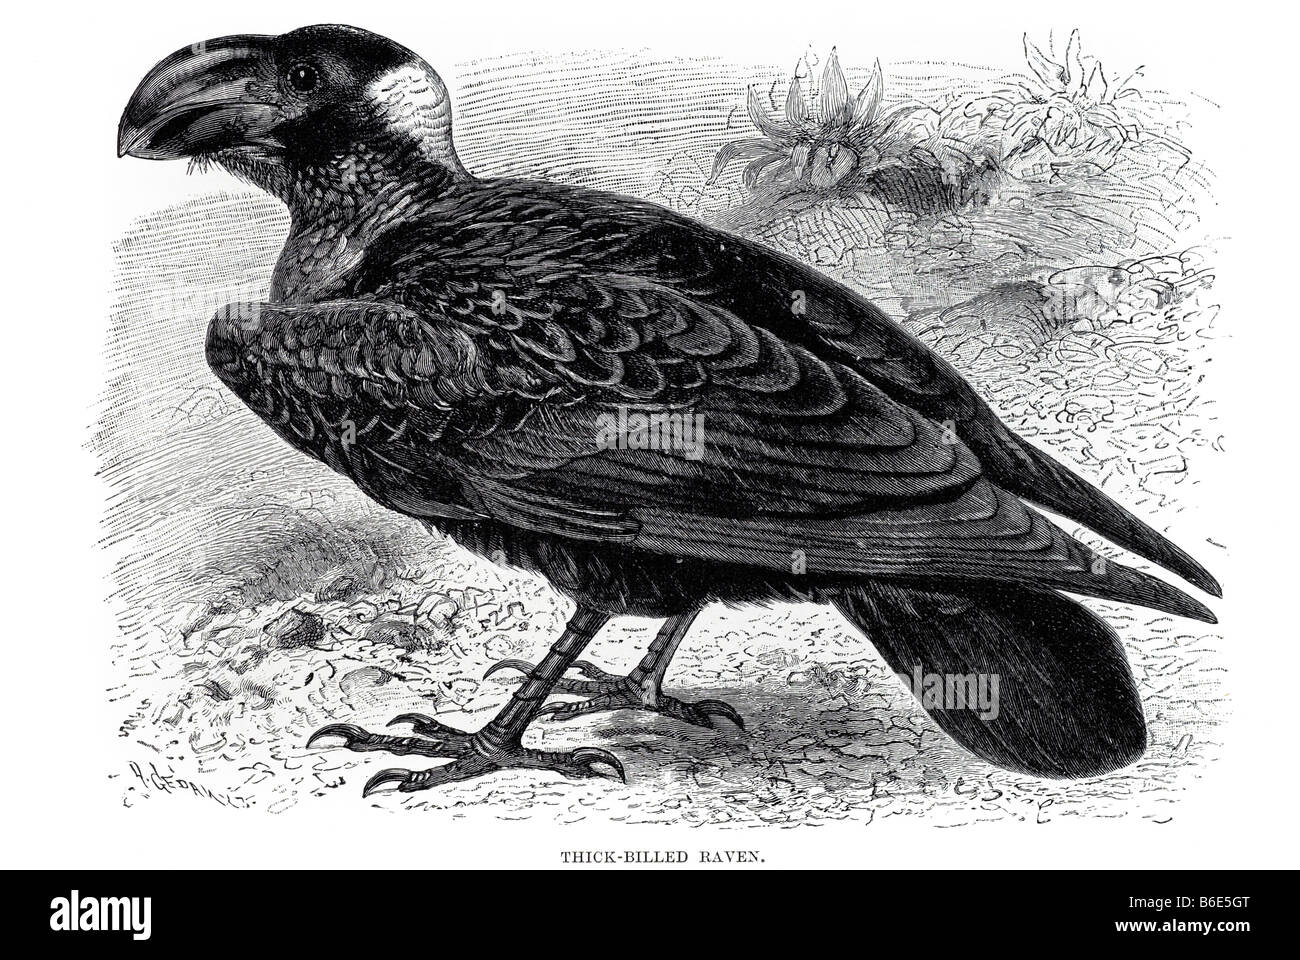 Thick-billed Raven (Corvus crassirostris), a Corvid from the Horn of Africa, shares with the Common Raven - Stock Image